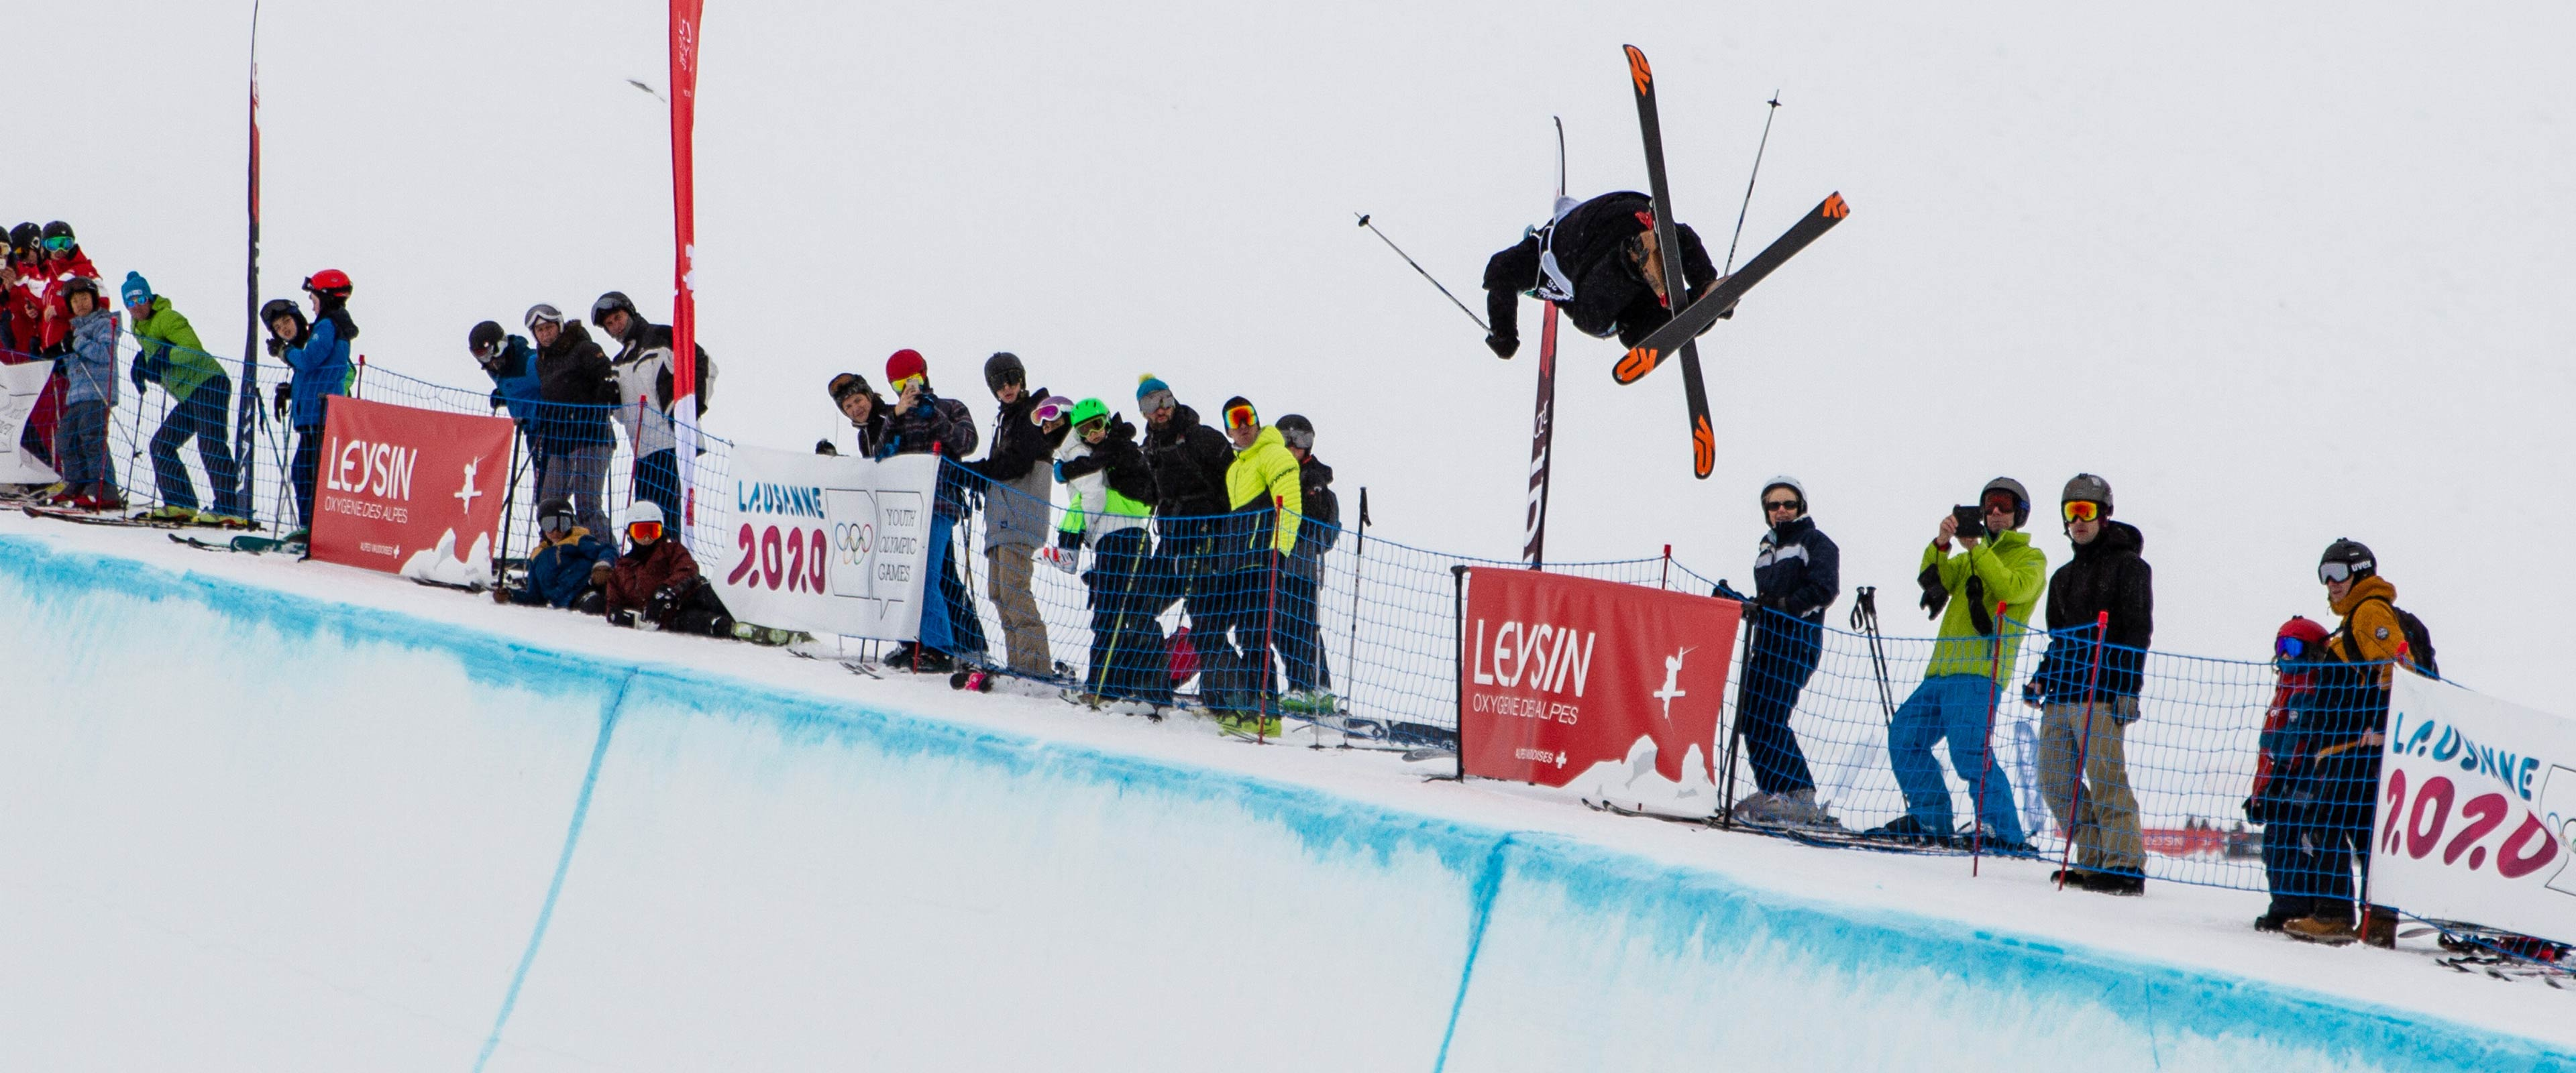 Freestyle Skiing At The 2020 Olympic Winter Games.Olympic Channel Will Present 300 Hours Of Lausanne 2020